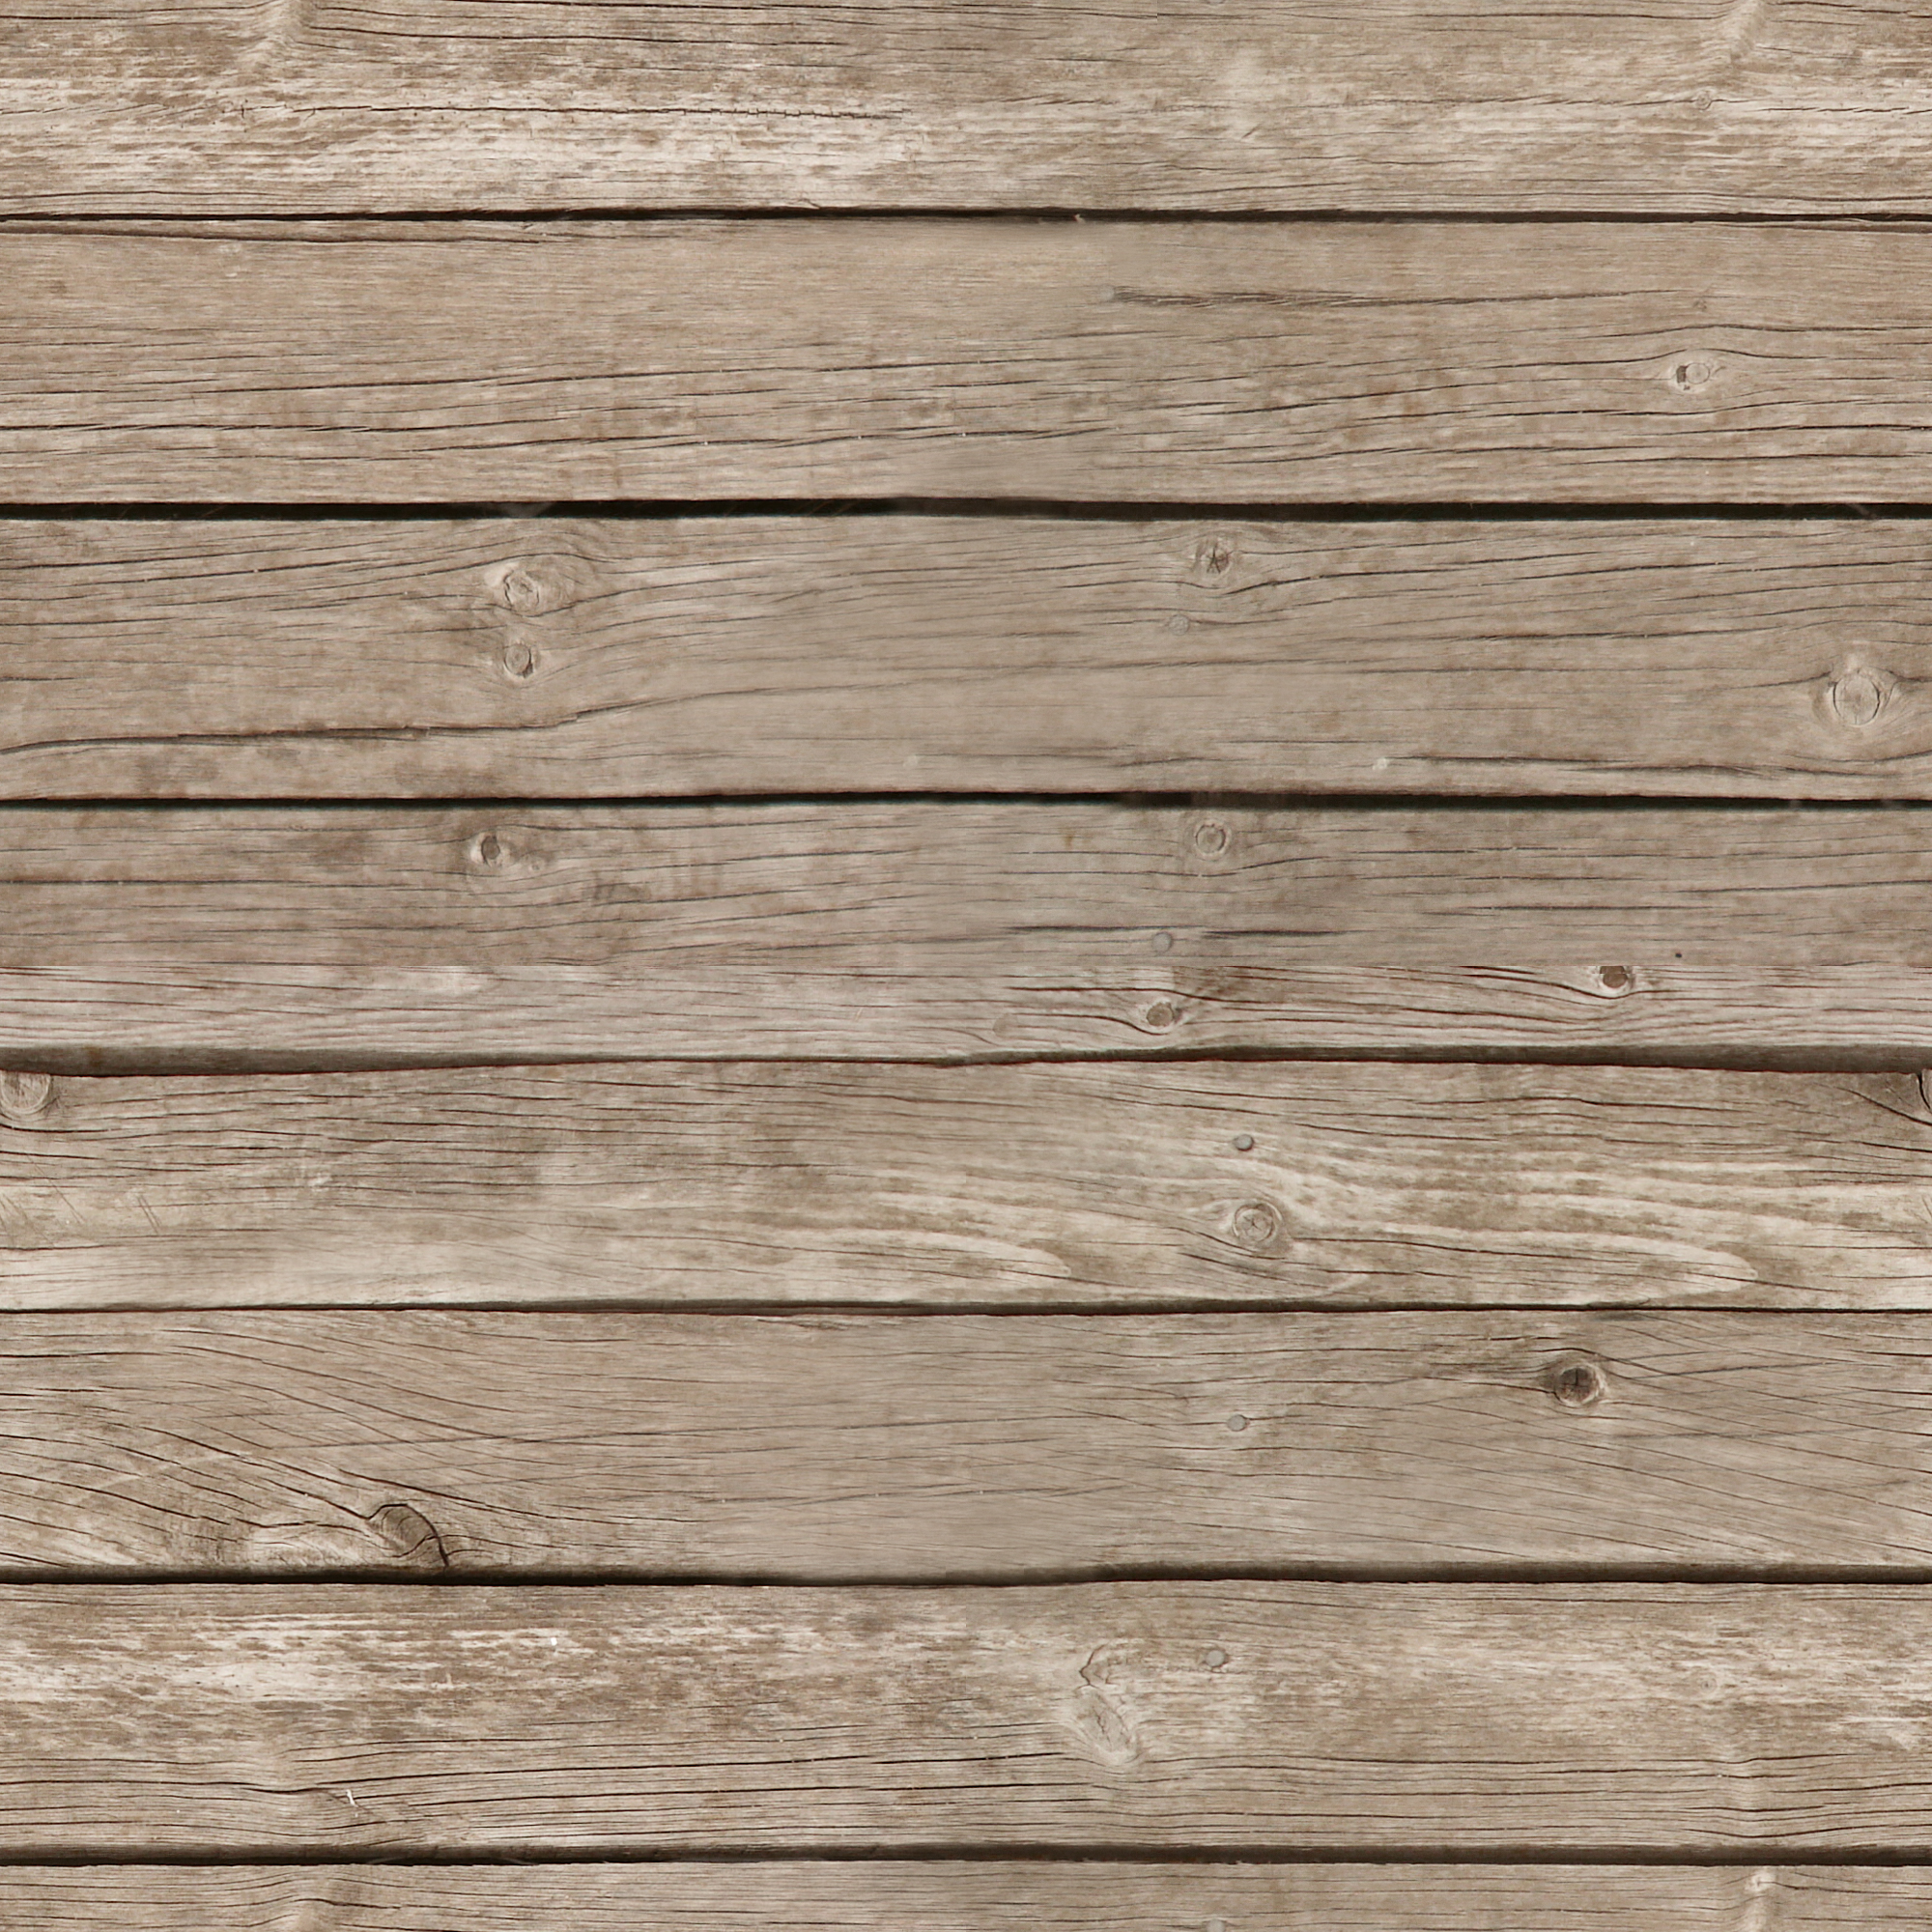 old wooden texture old wood background